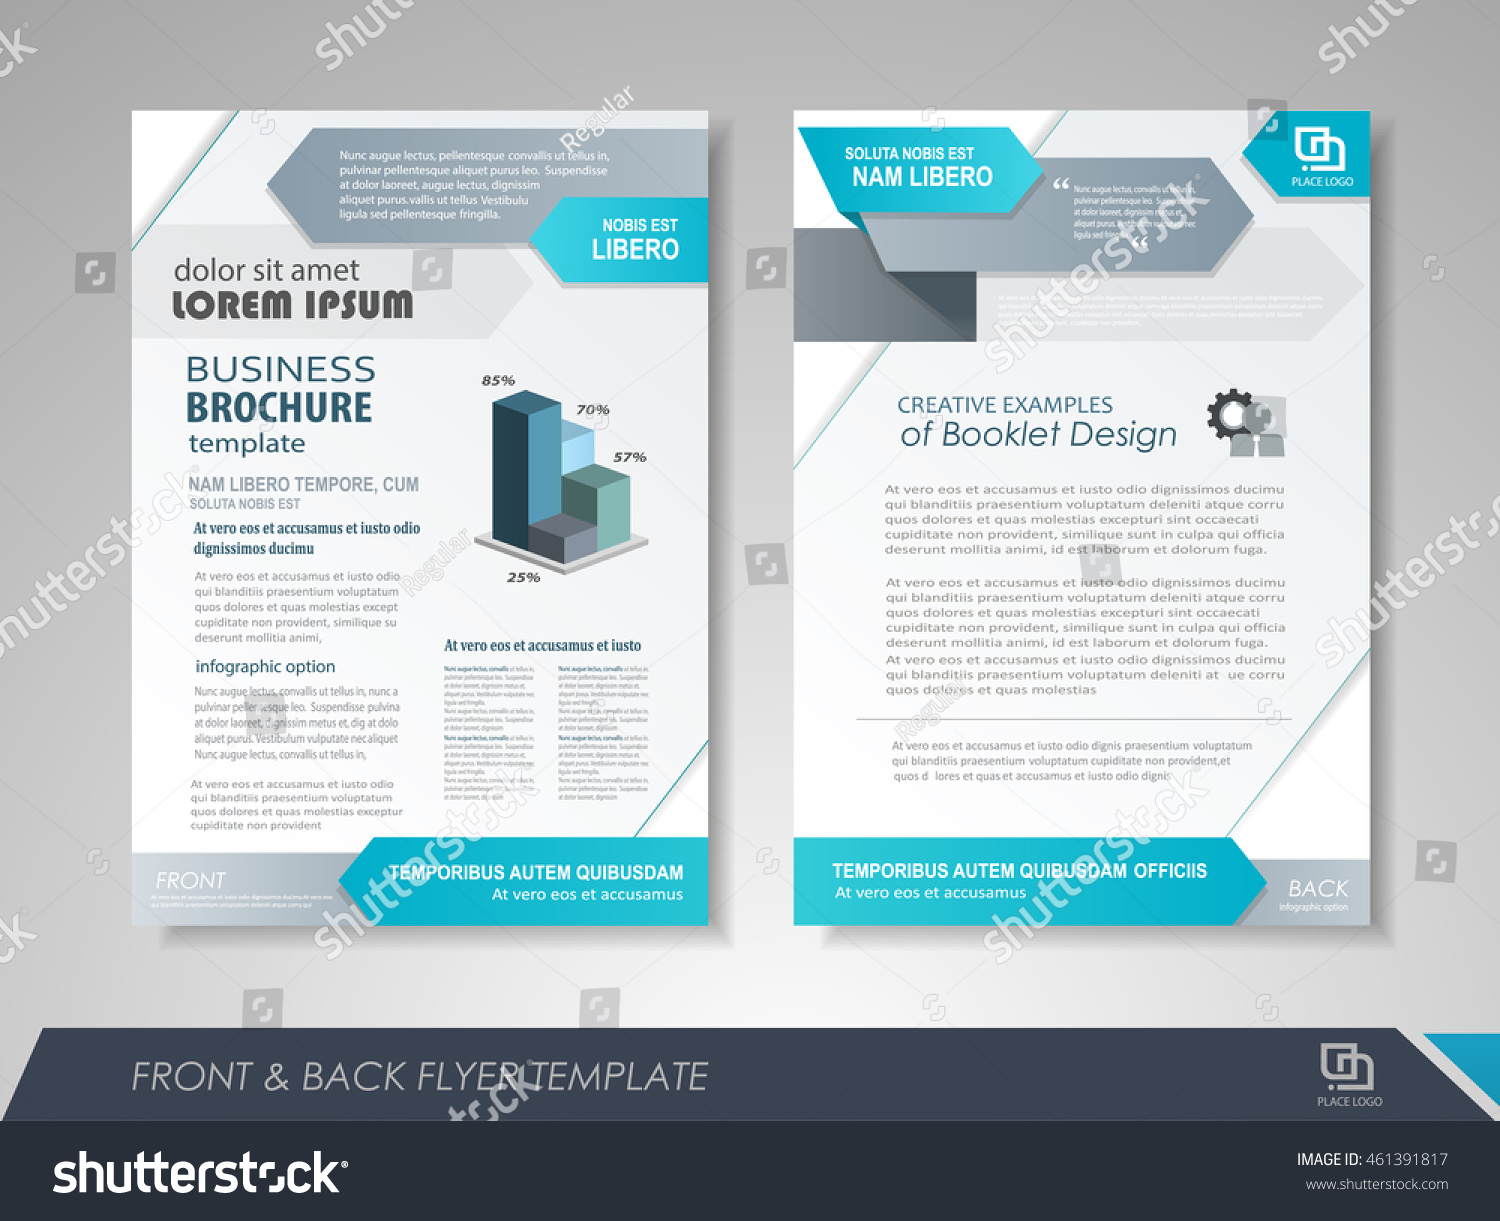 Magnificent 1 Page Resume Format Free Download Thin 100 Free Resume Builder And Download Flat 100 Free Resume Builder Online 1099 Contract Template Old 15 Year Old Resume Black2 Circle Template Front Back Page Brochure Template Flyer Stock Vector 461391817 ..